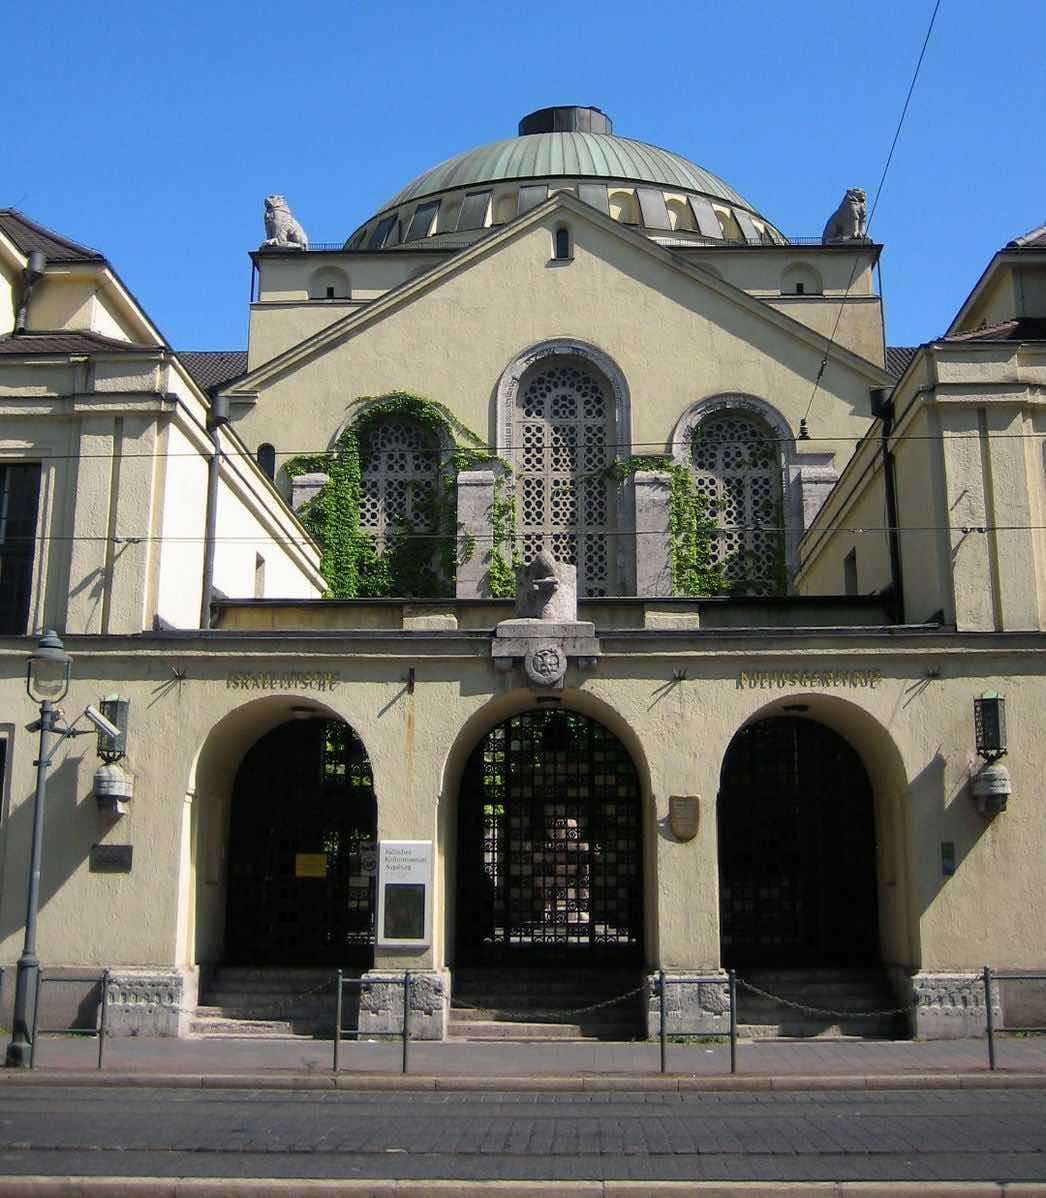 Entry to the Augsburg synagogue. Photo by Alois Wüst, via Wikimedia, GNU Free Documentation License